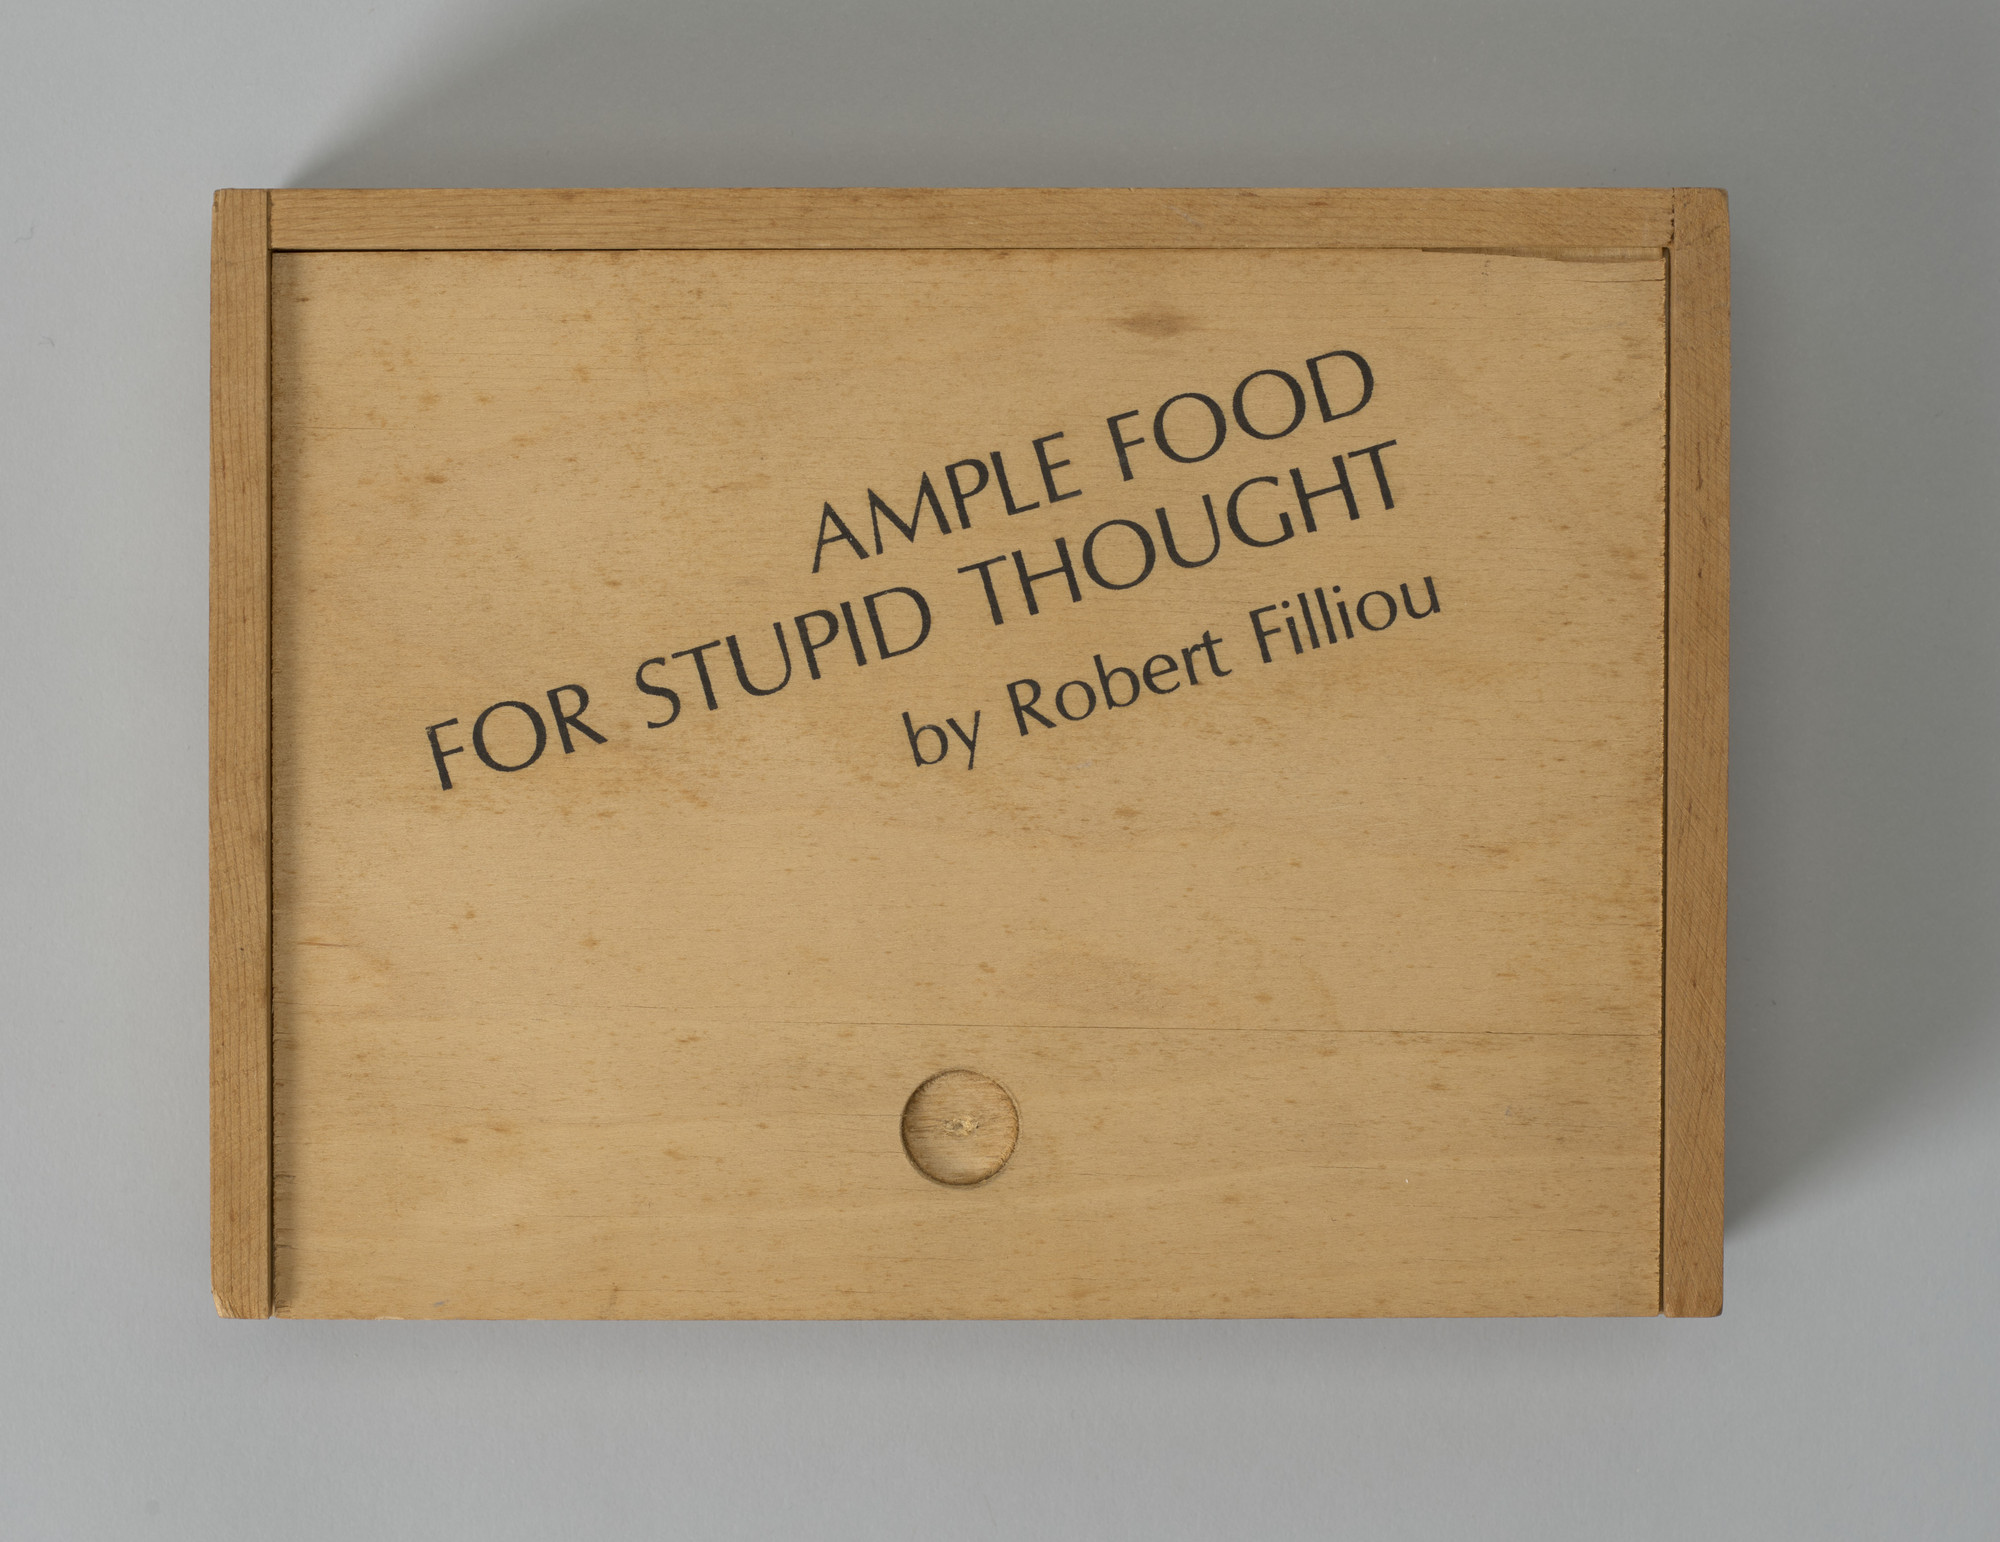 Robert Filliou. Ample Food for Stupid Thought. 1965